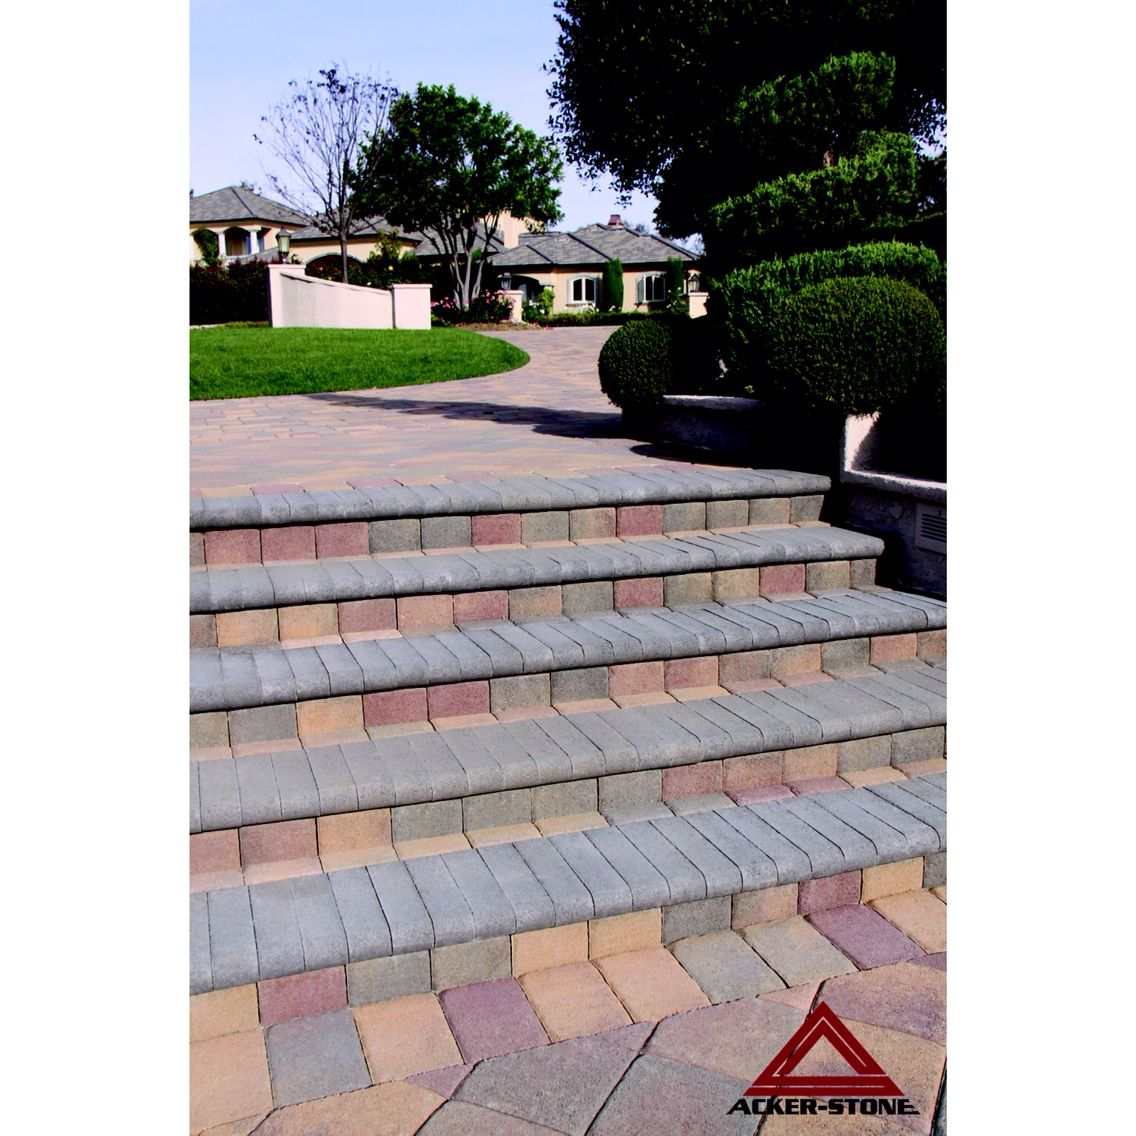 Bullnose Represent The Finishing Touch For Applications Such As Stair Treads,  Pools Coping And Masonry Wall Caps. Available Colors Work Well With All Our  ...